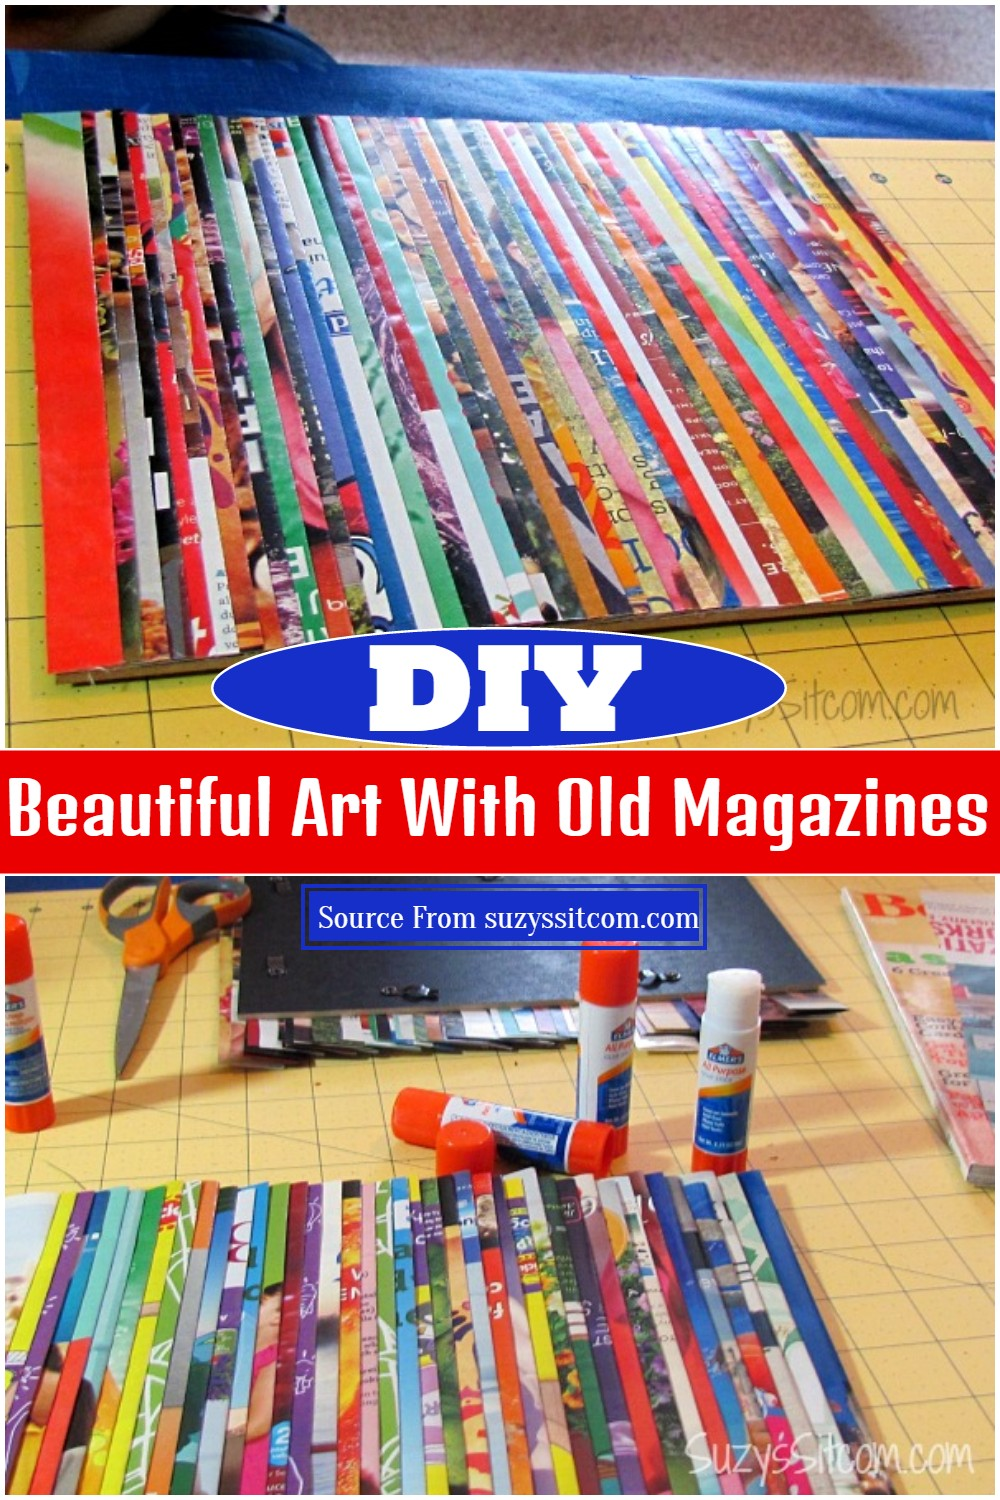 Beautiful Art With DIY Old Magazines